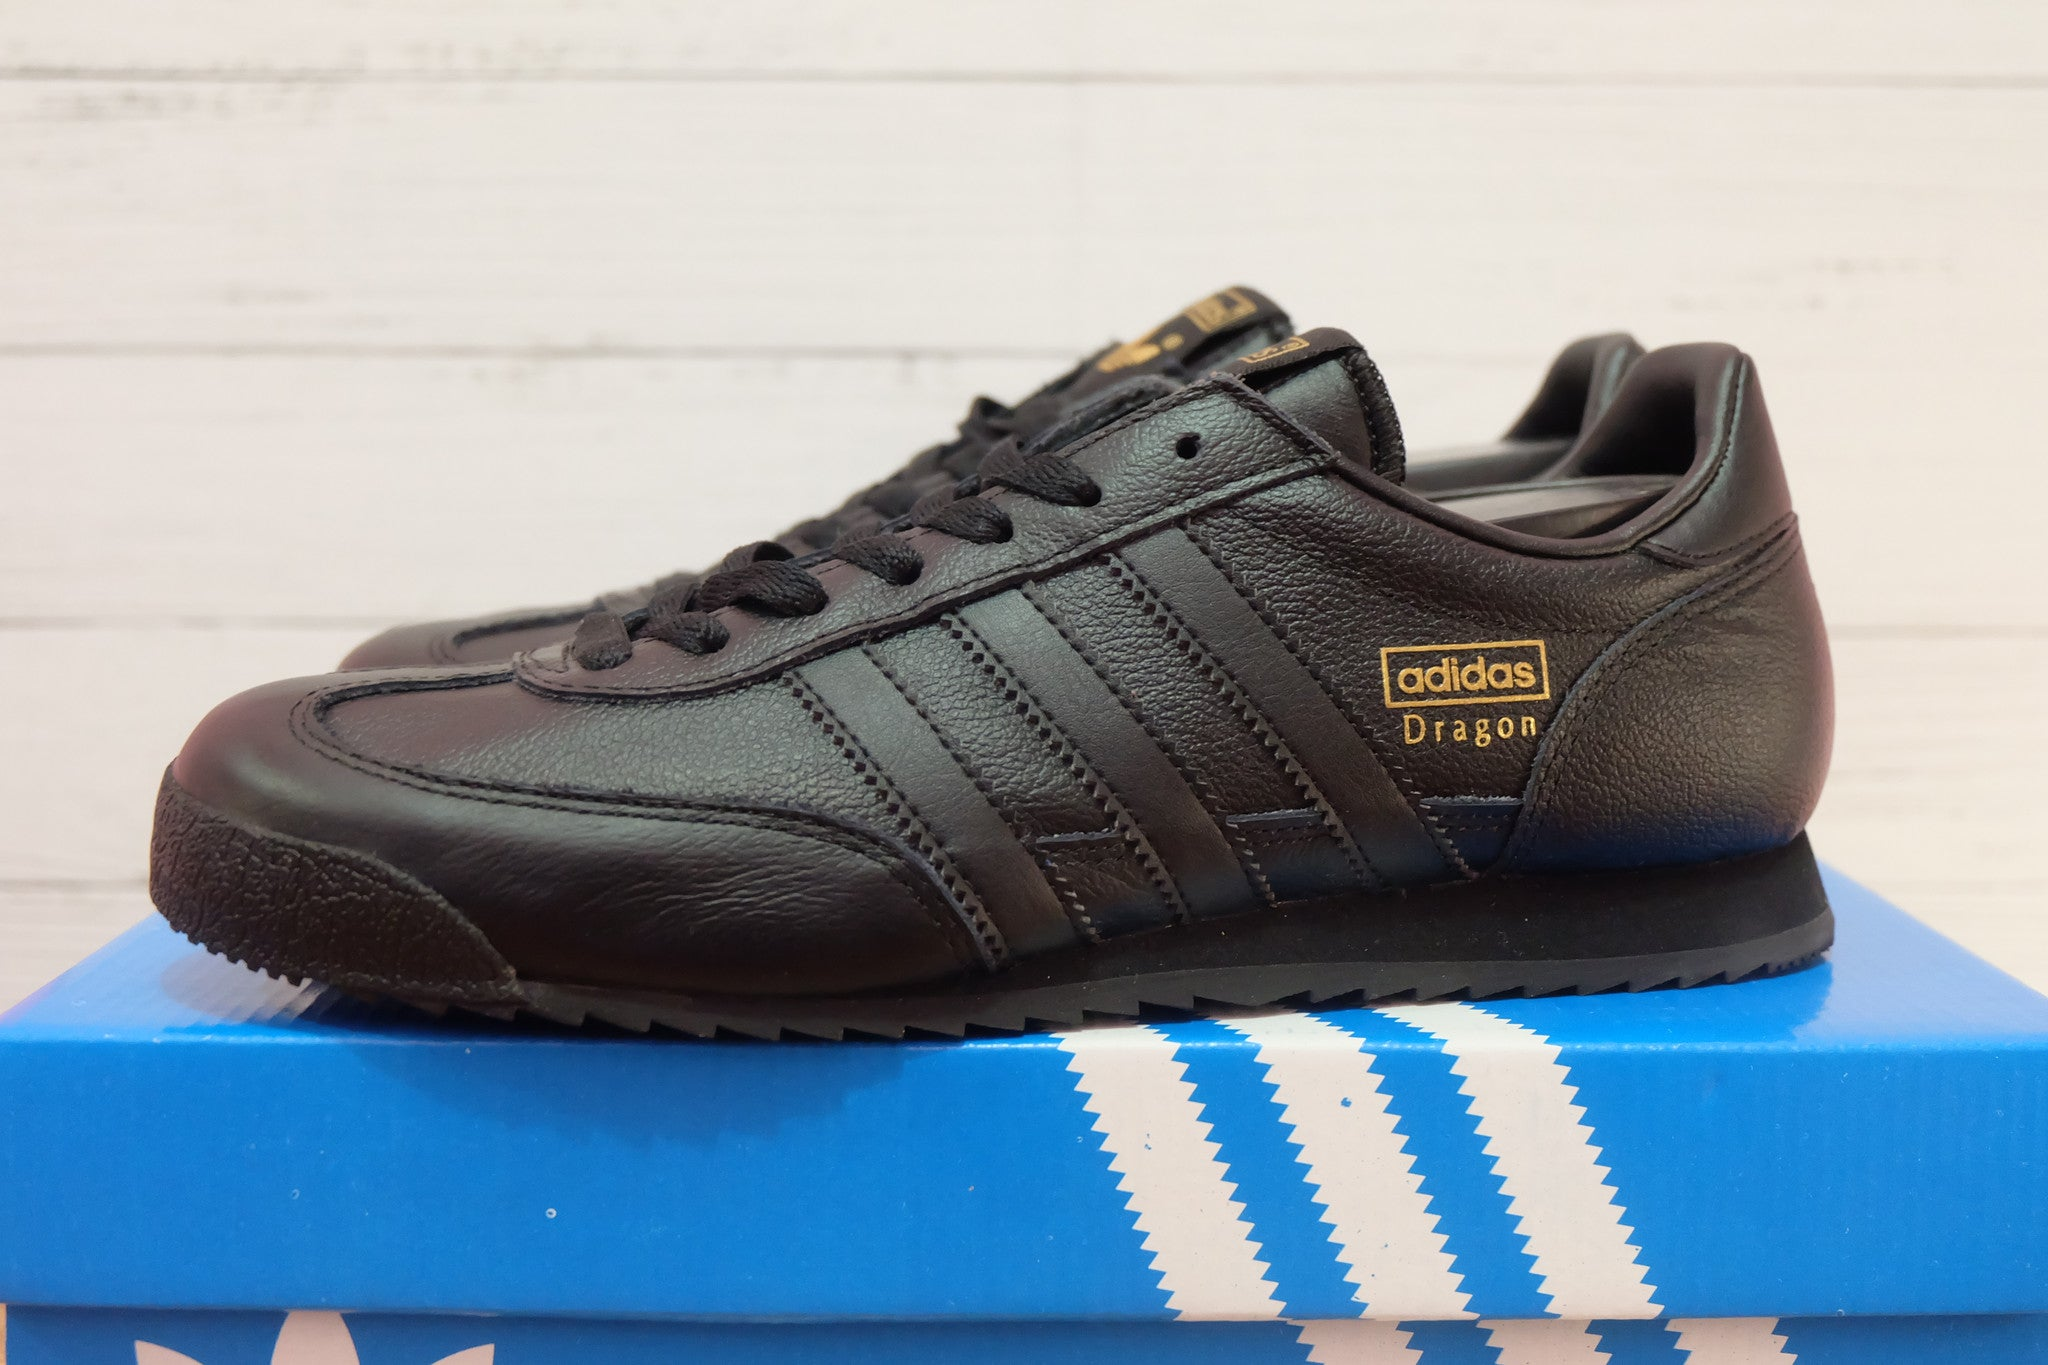 Best Deals Online - adidas dragon all black leather, OFF 76%,Buy!